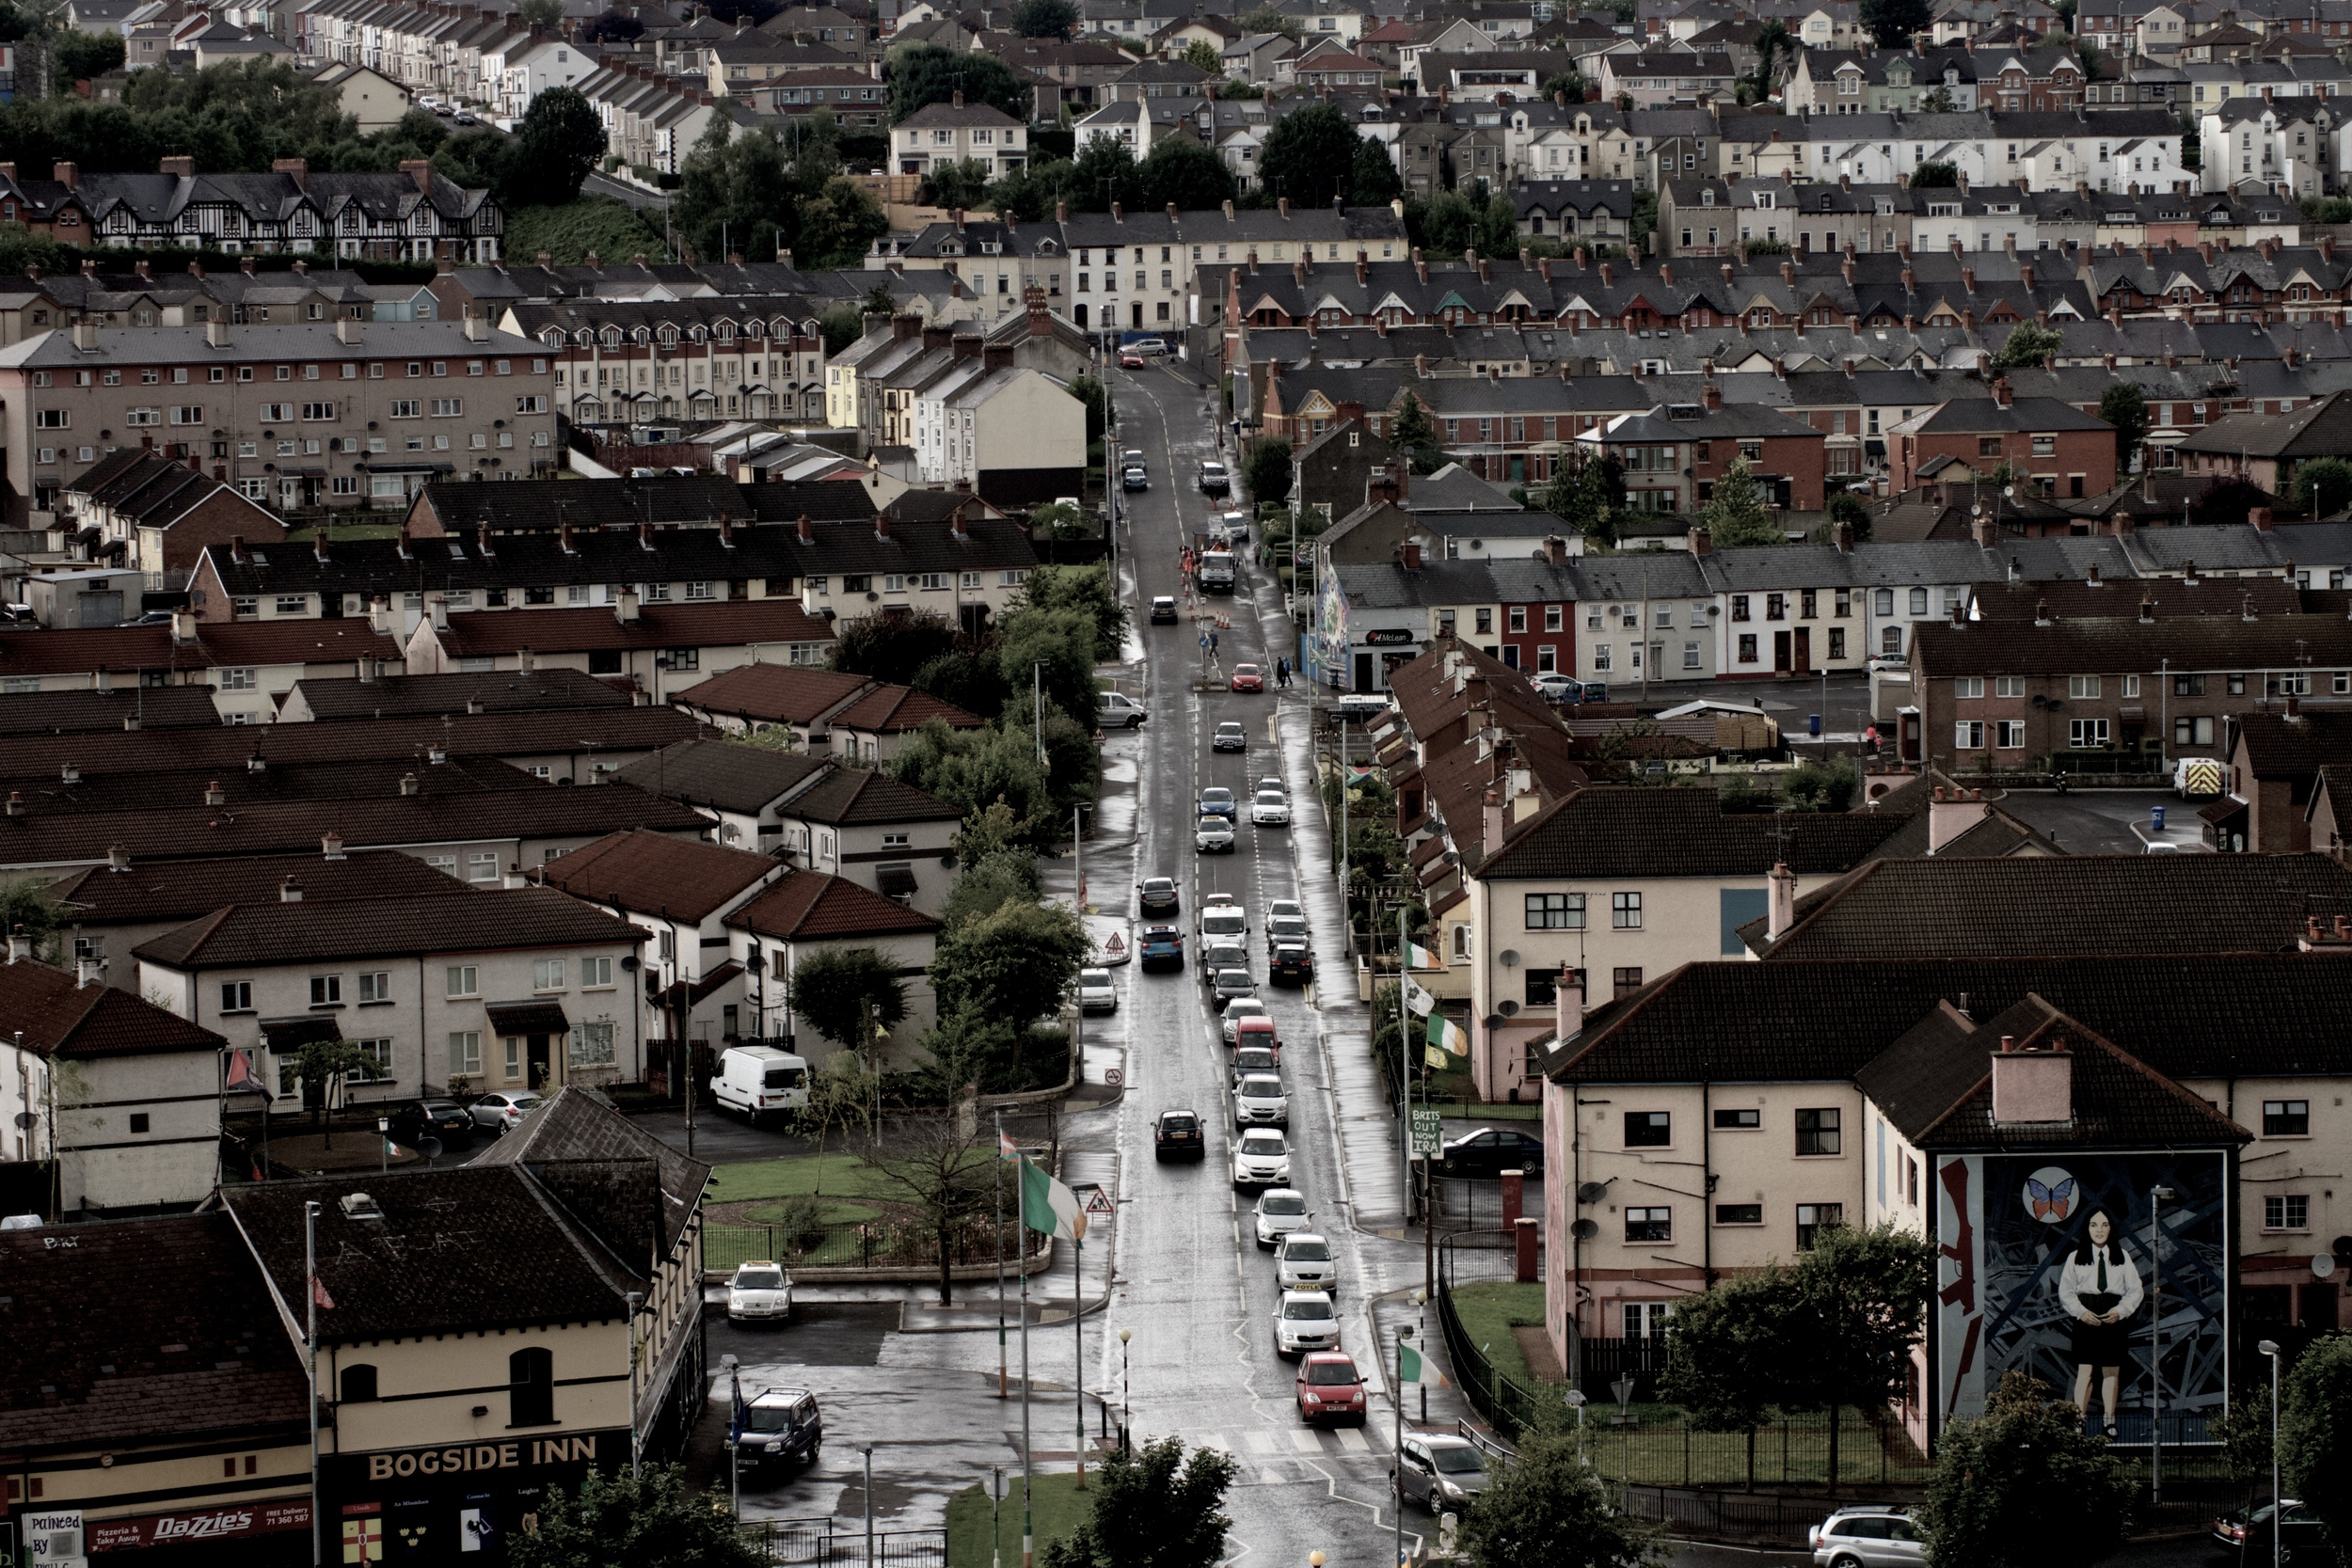 6. Westland Street cuts through the Bogside, viewed from the city wall. [f/11 1/125 ISO 800 64mm]